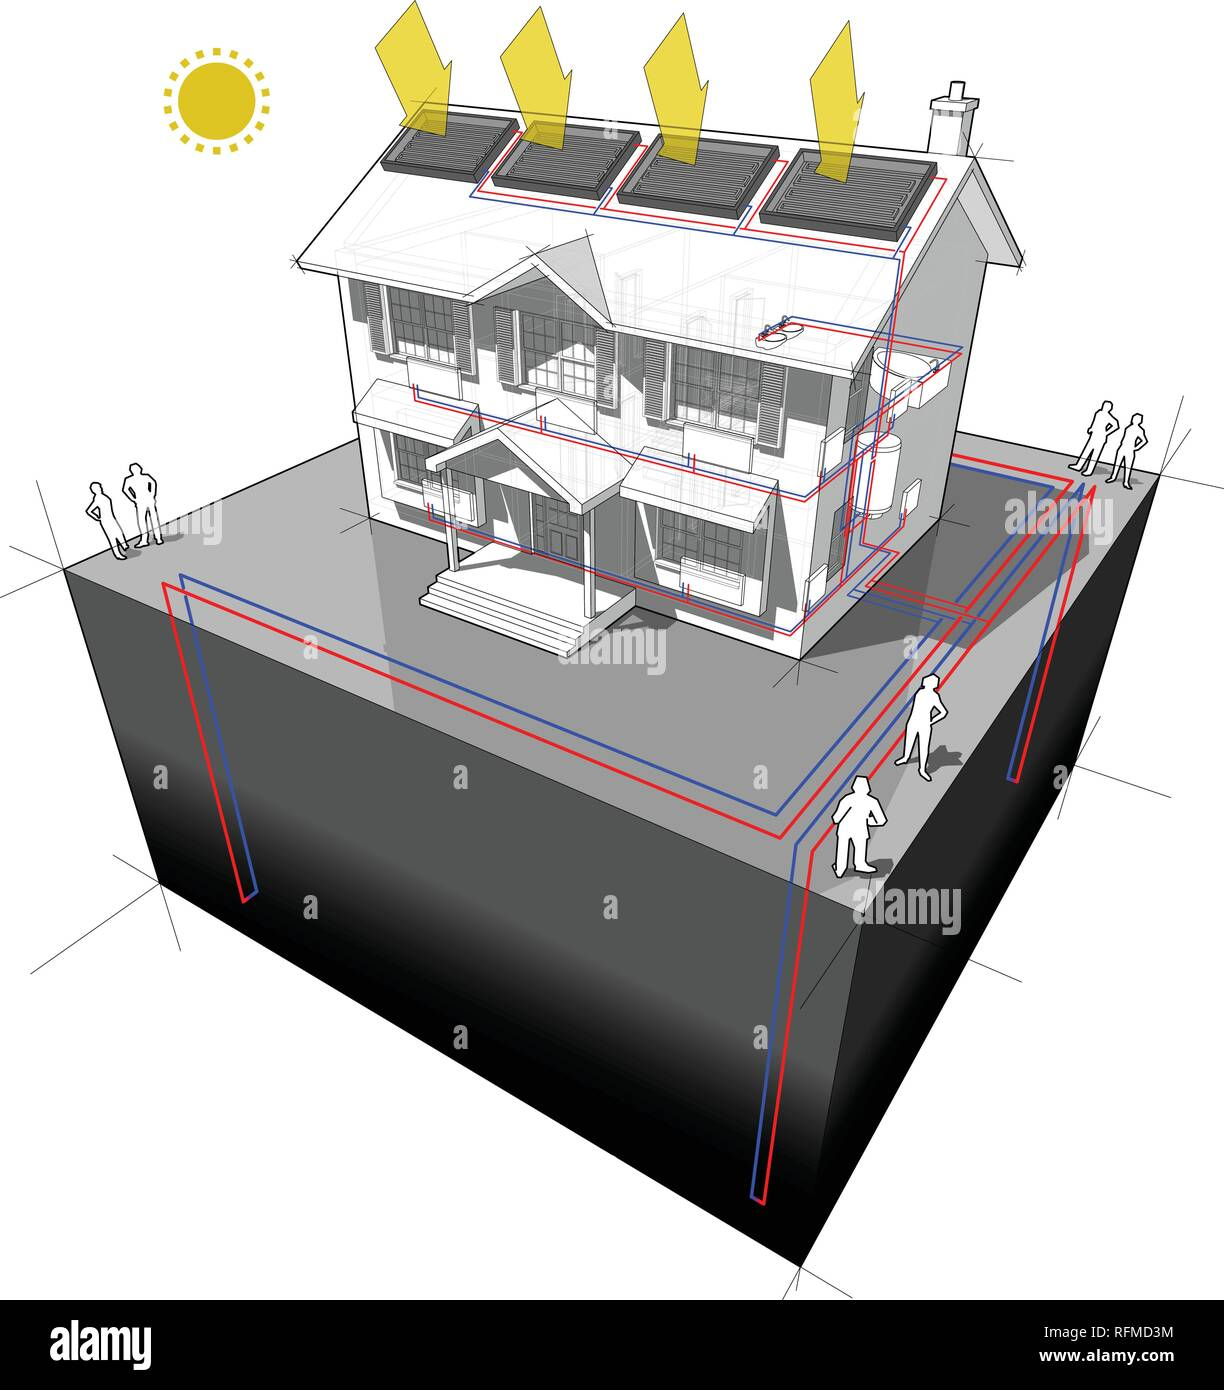 hight resolution of diagram of a classic colonial house with ground source heat pump with 4 wells as source of energy for heating and radiators